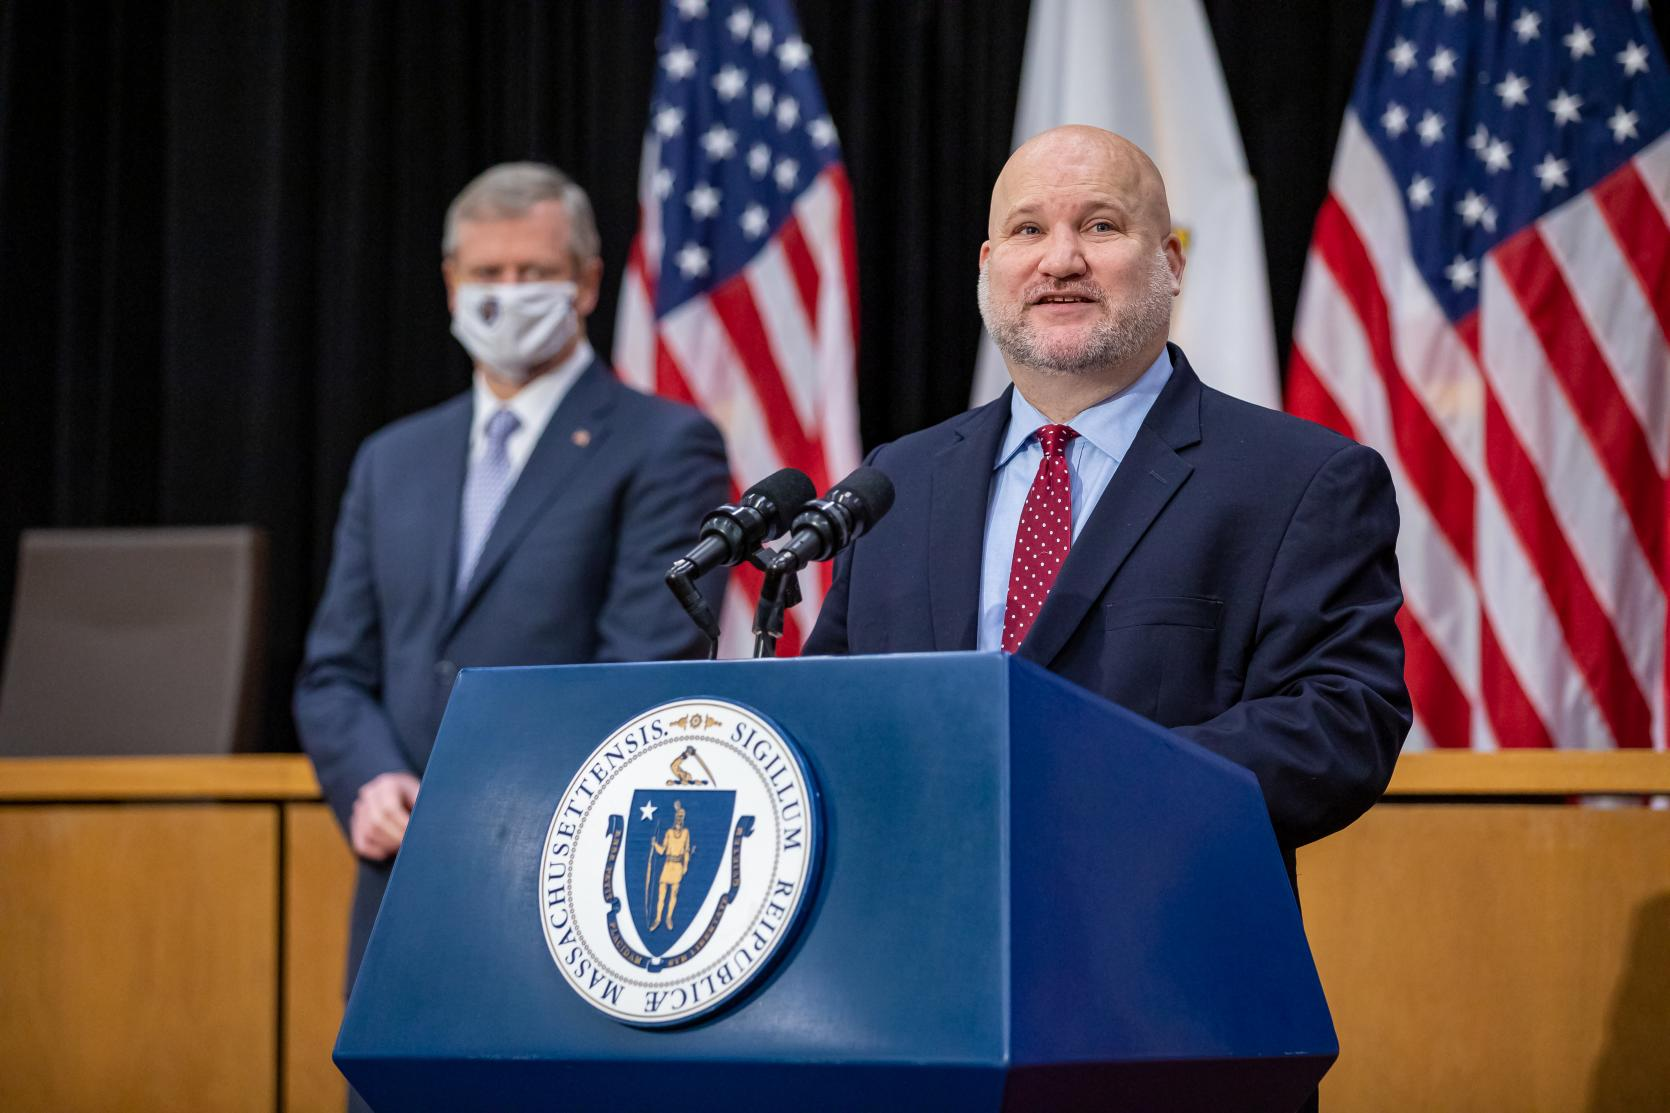 Baker-Polito Administration Announces Pooled Testing Initiative for Massachusetts Schools, Districts